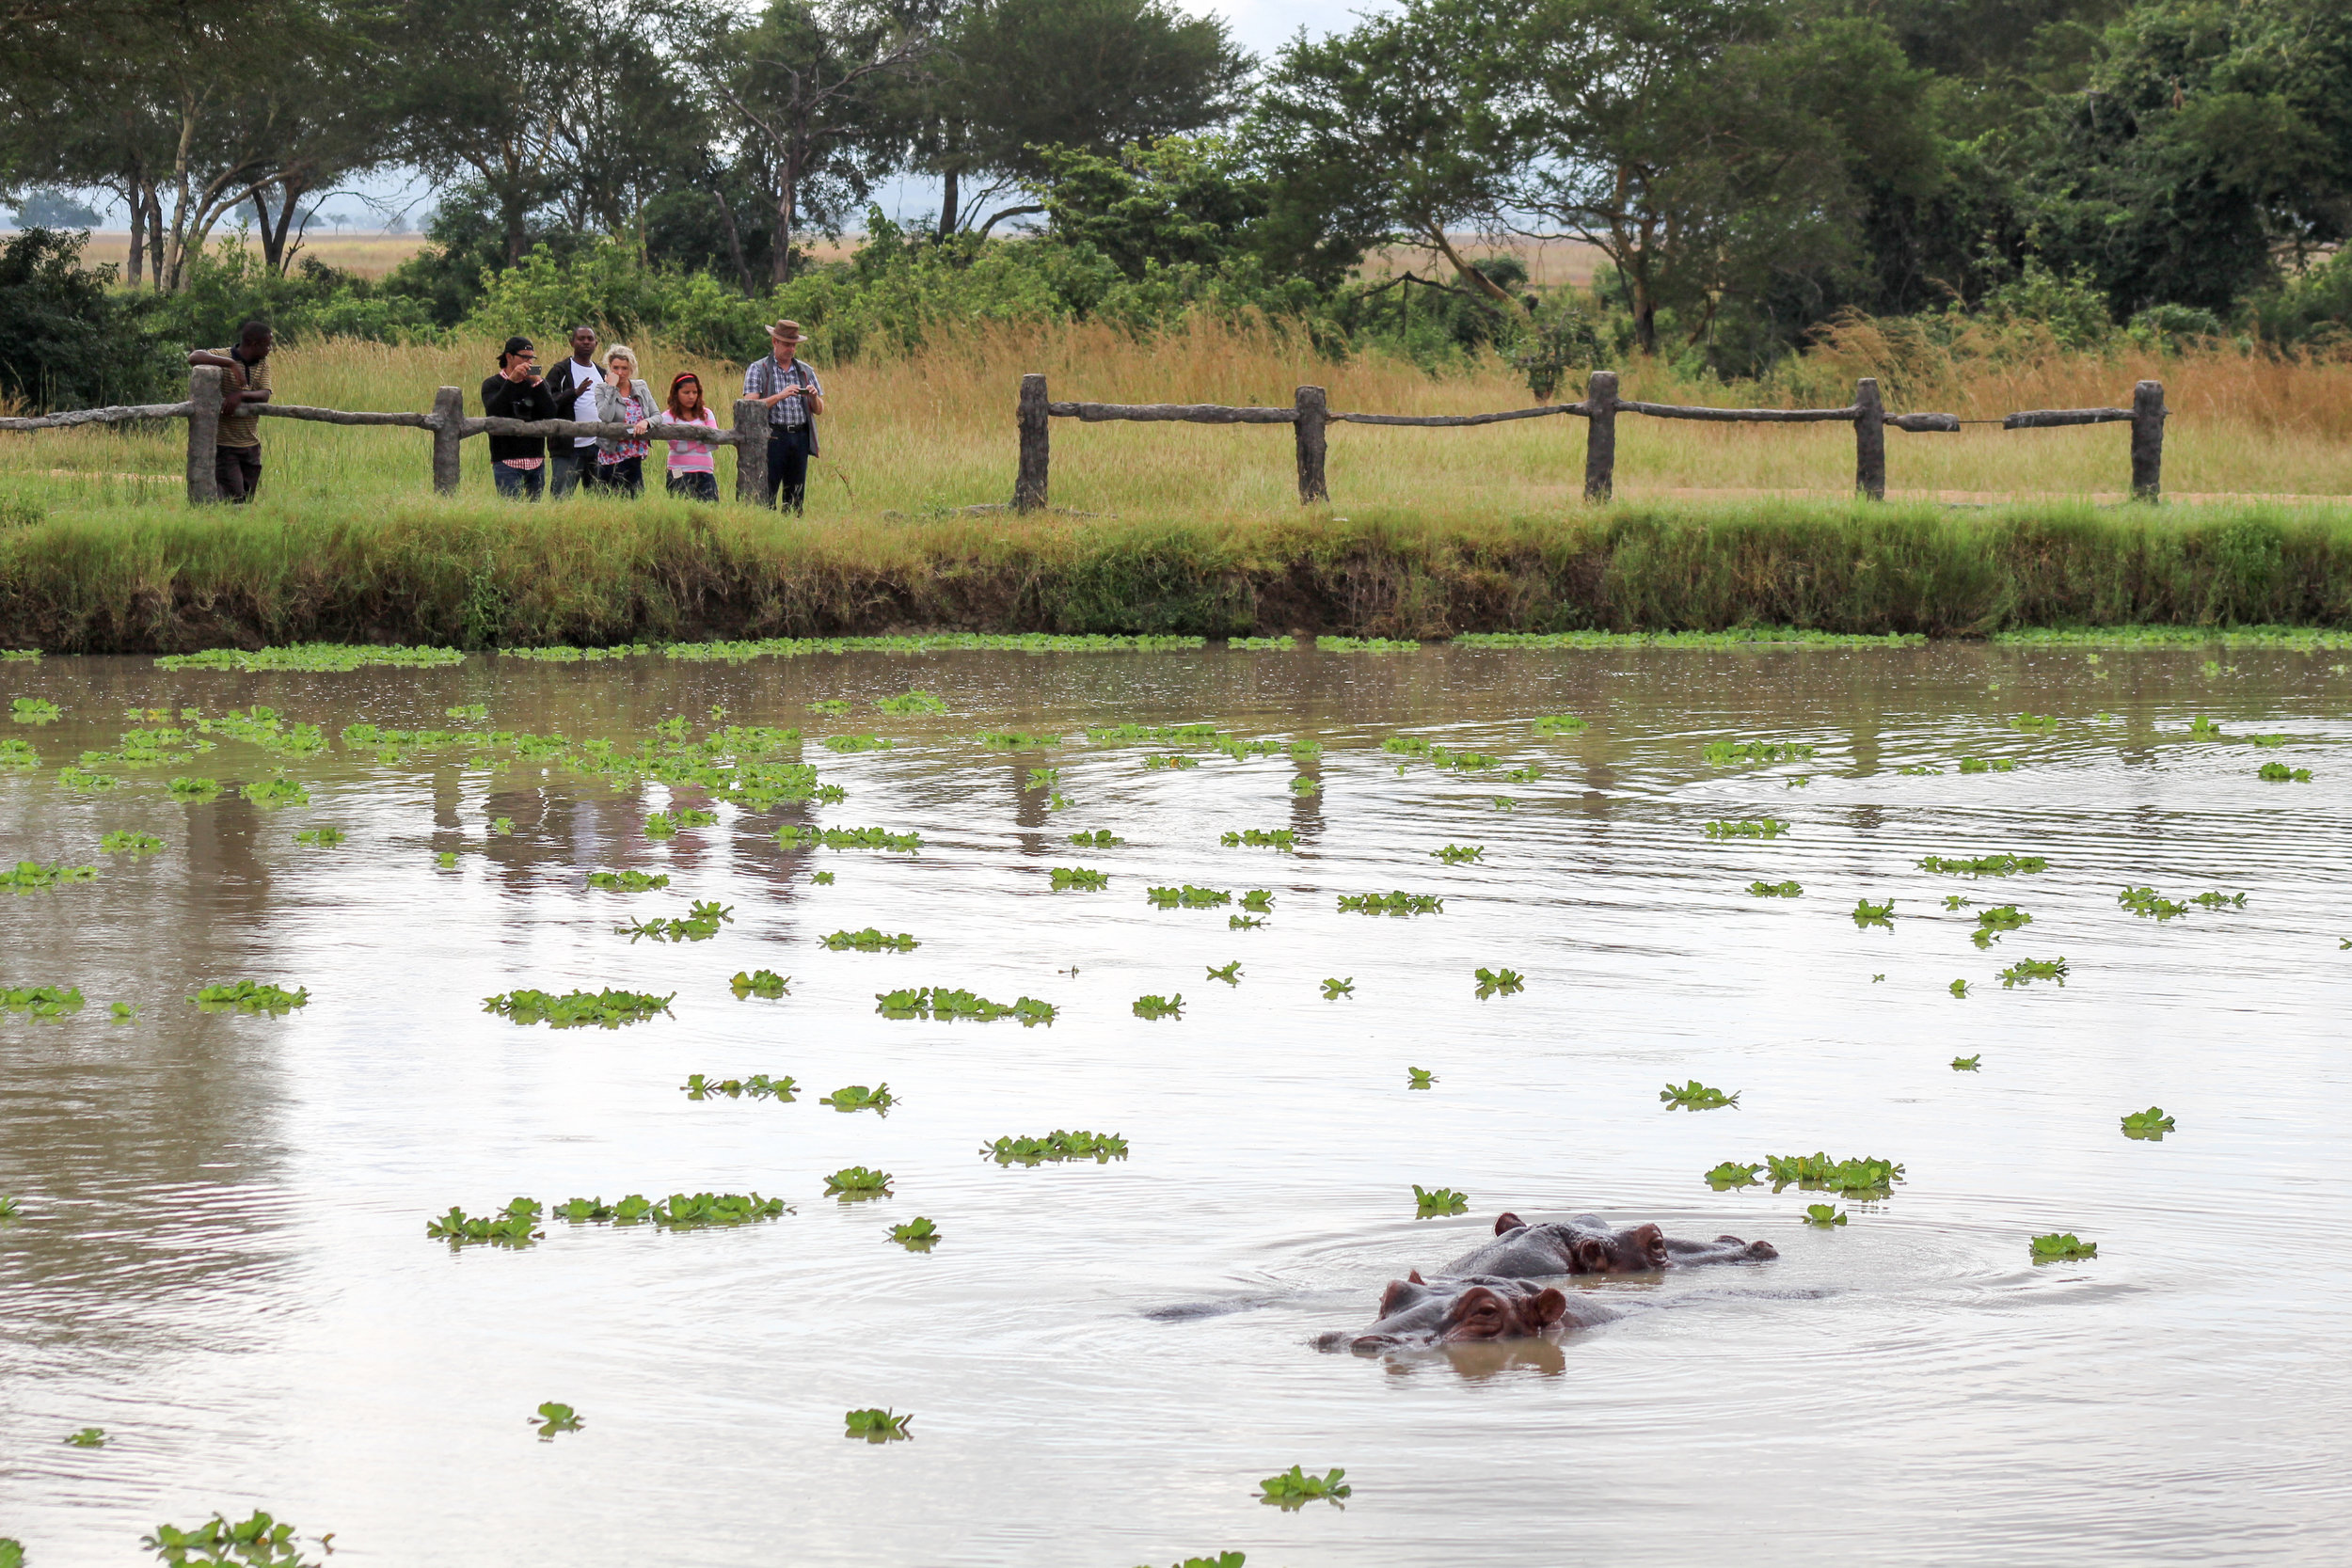 A family and safari guide look on as hippopotamus swim in a pond